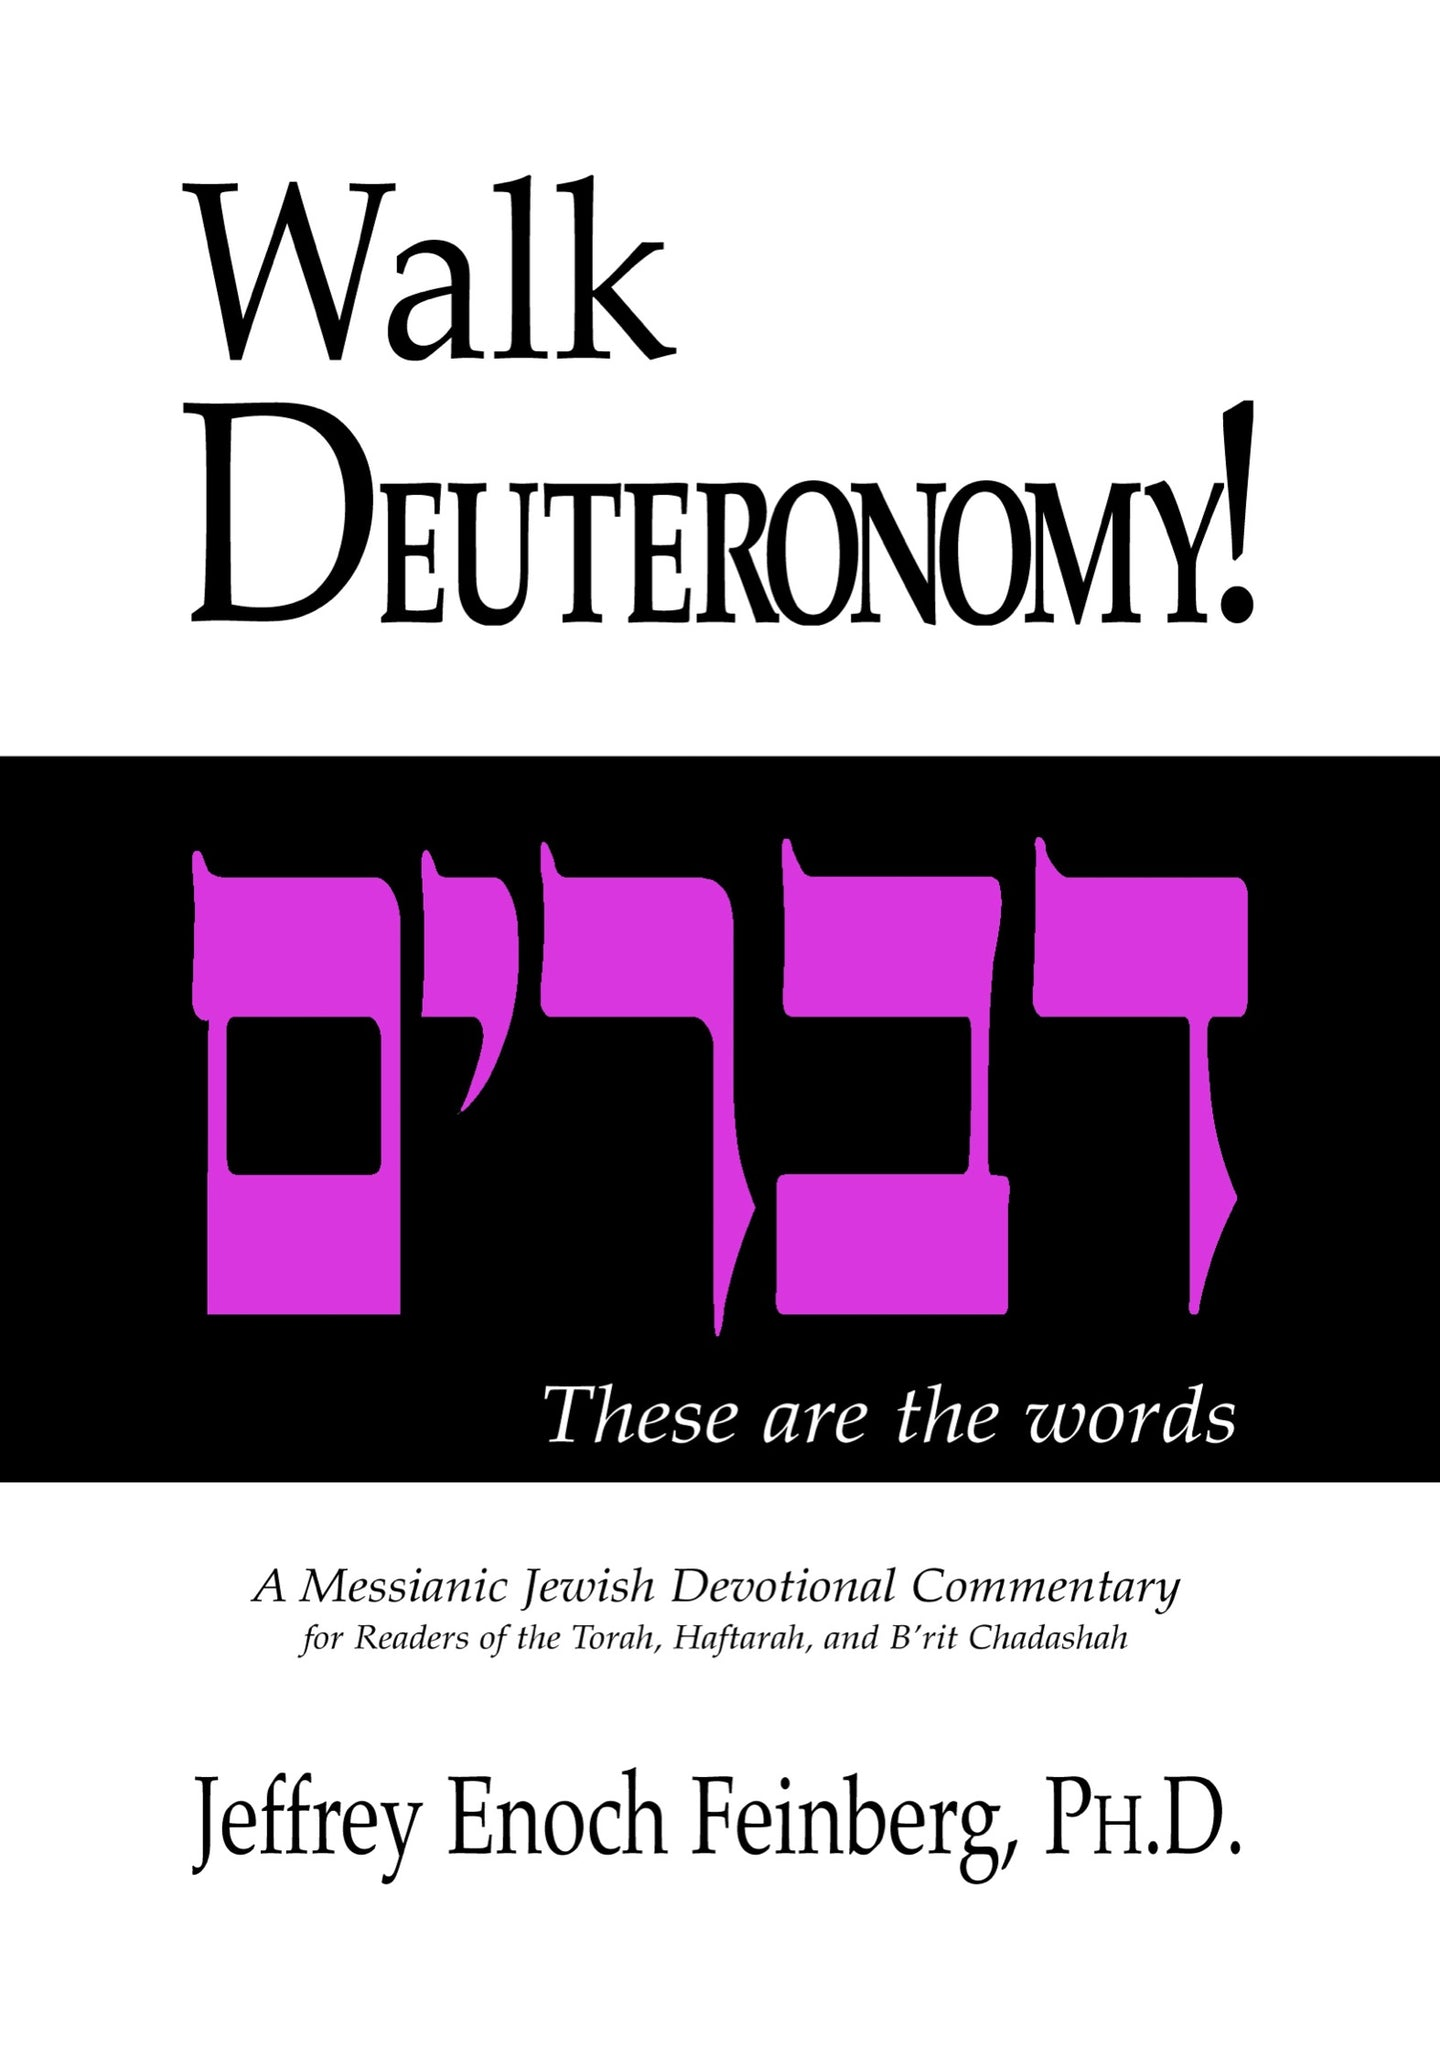 Walk Deuteronomy!  A Messianic Jewish Devotional Commentary by Jeffrey Enoch Feinberg, PhD